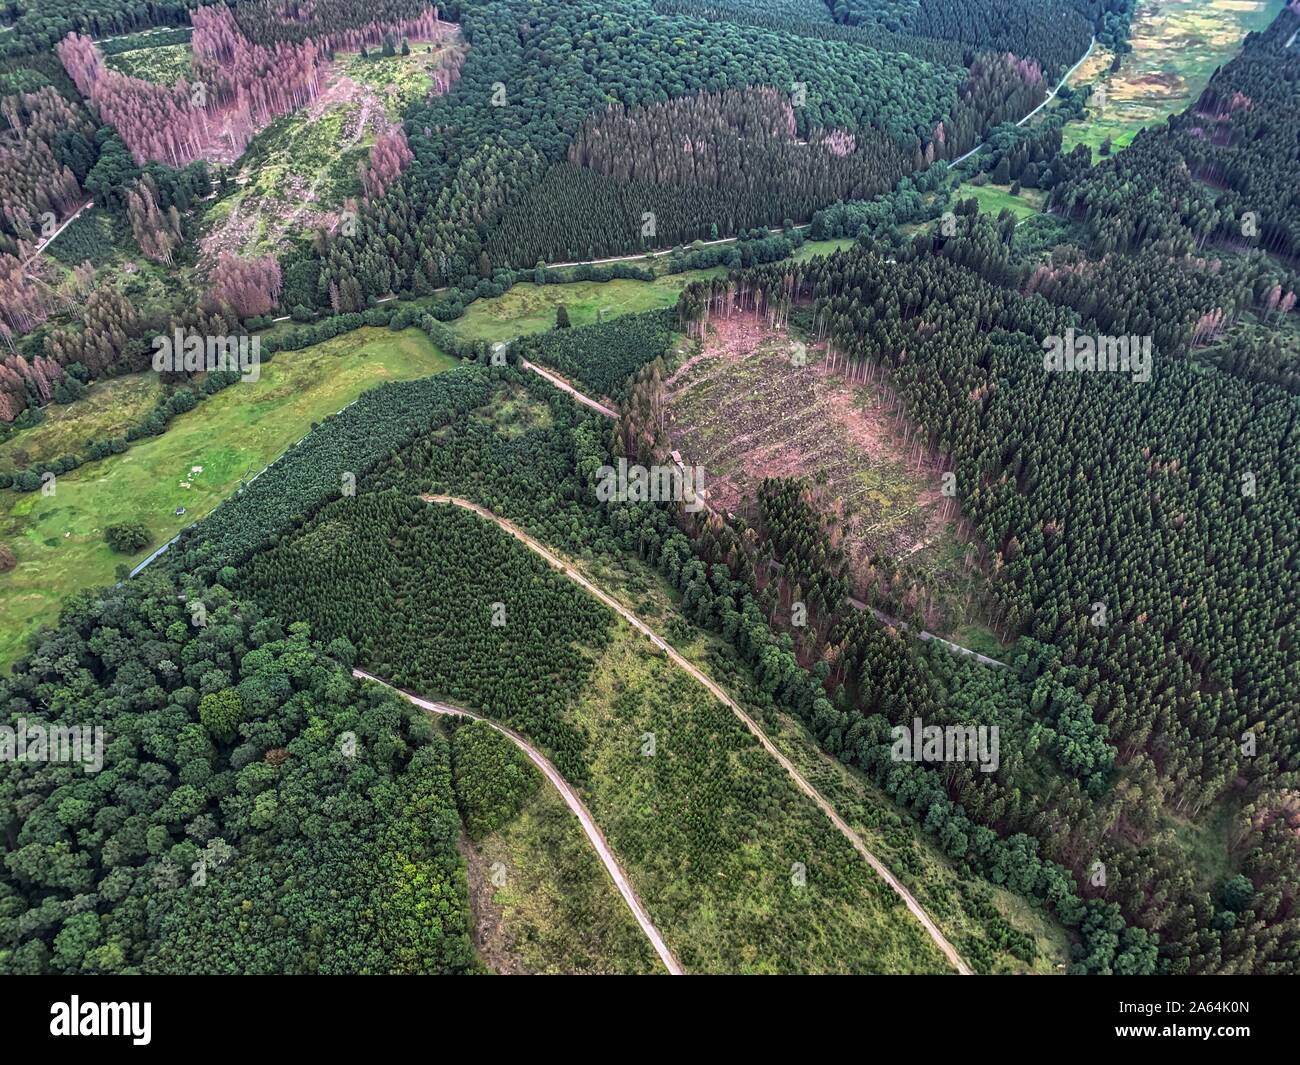 Forest damage in the Arnsberger Wald nature park Park, Sauerland, near Warstein, Germany Stock Photo